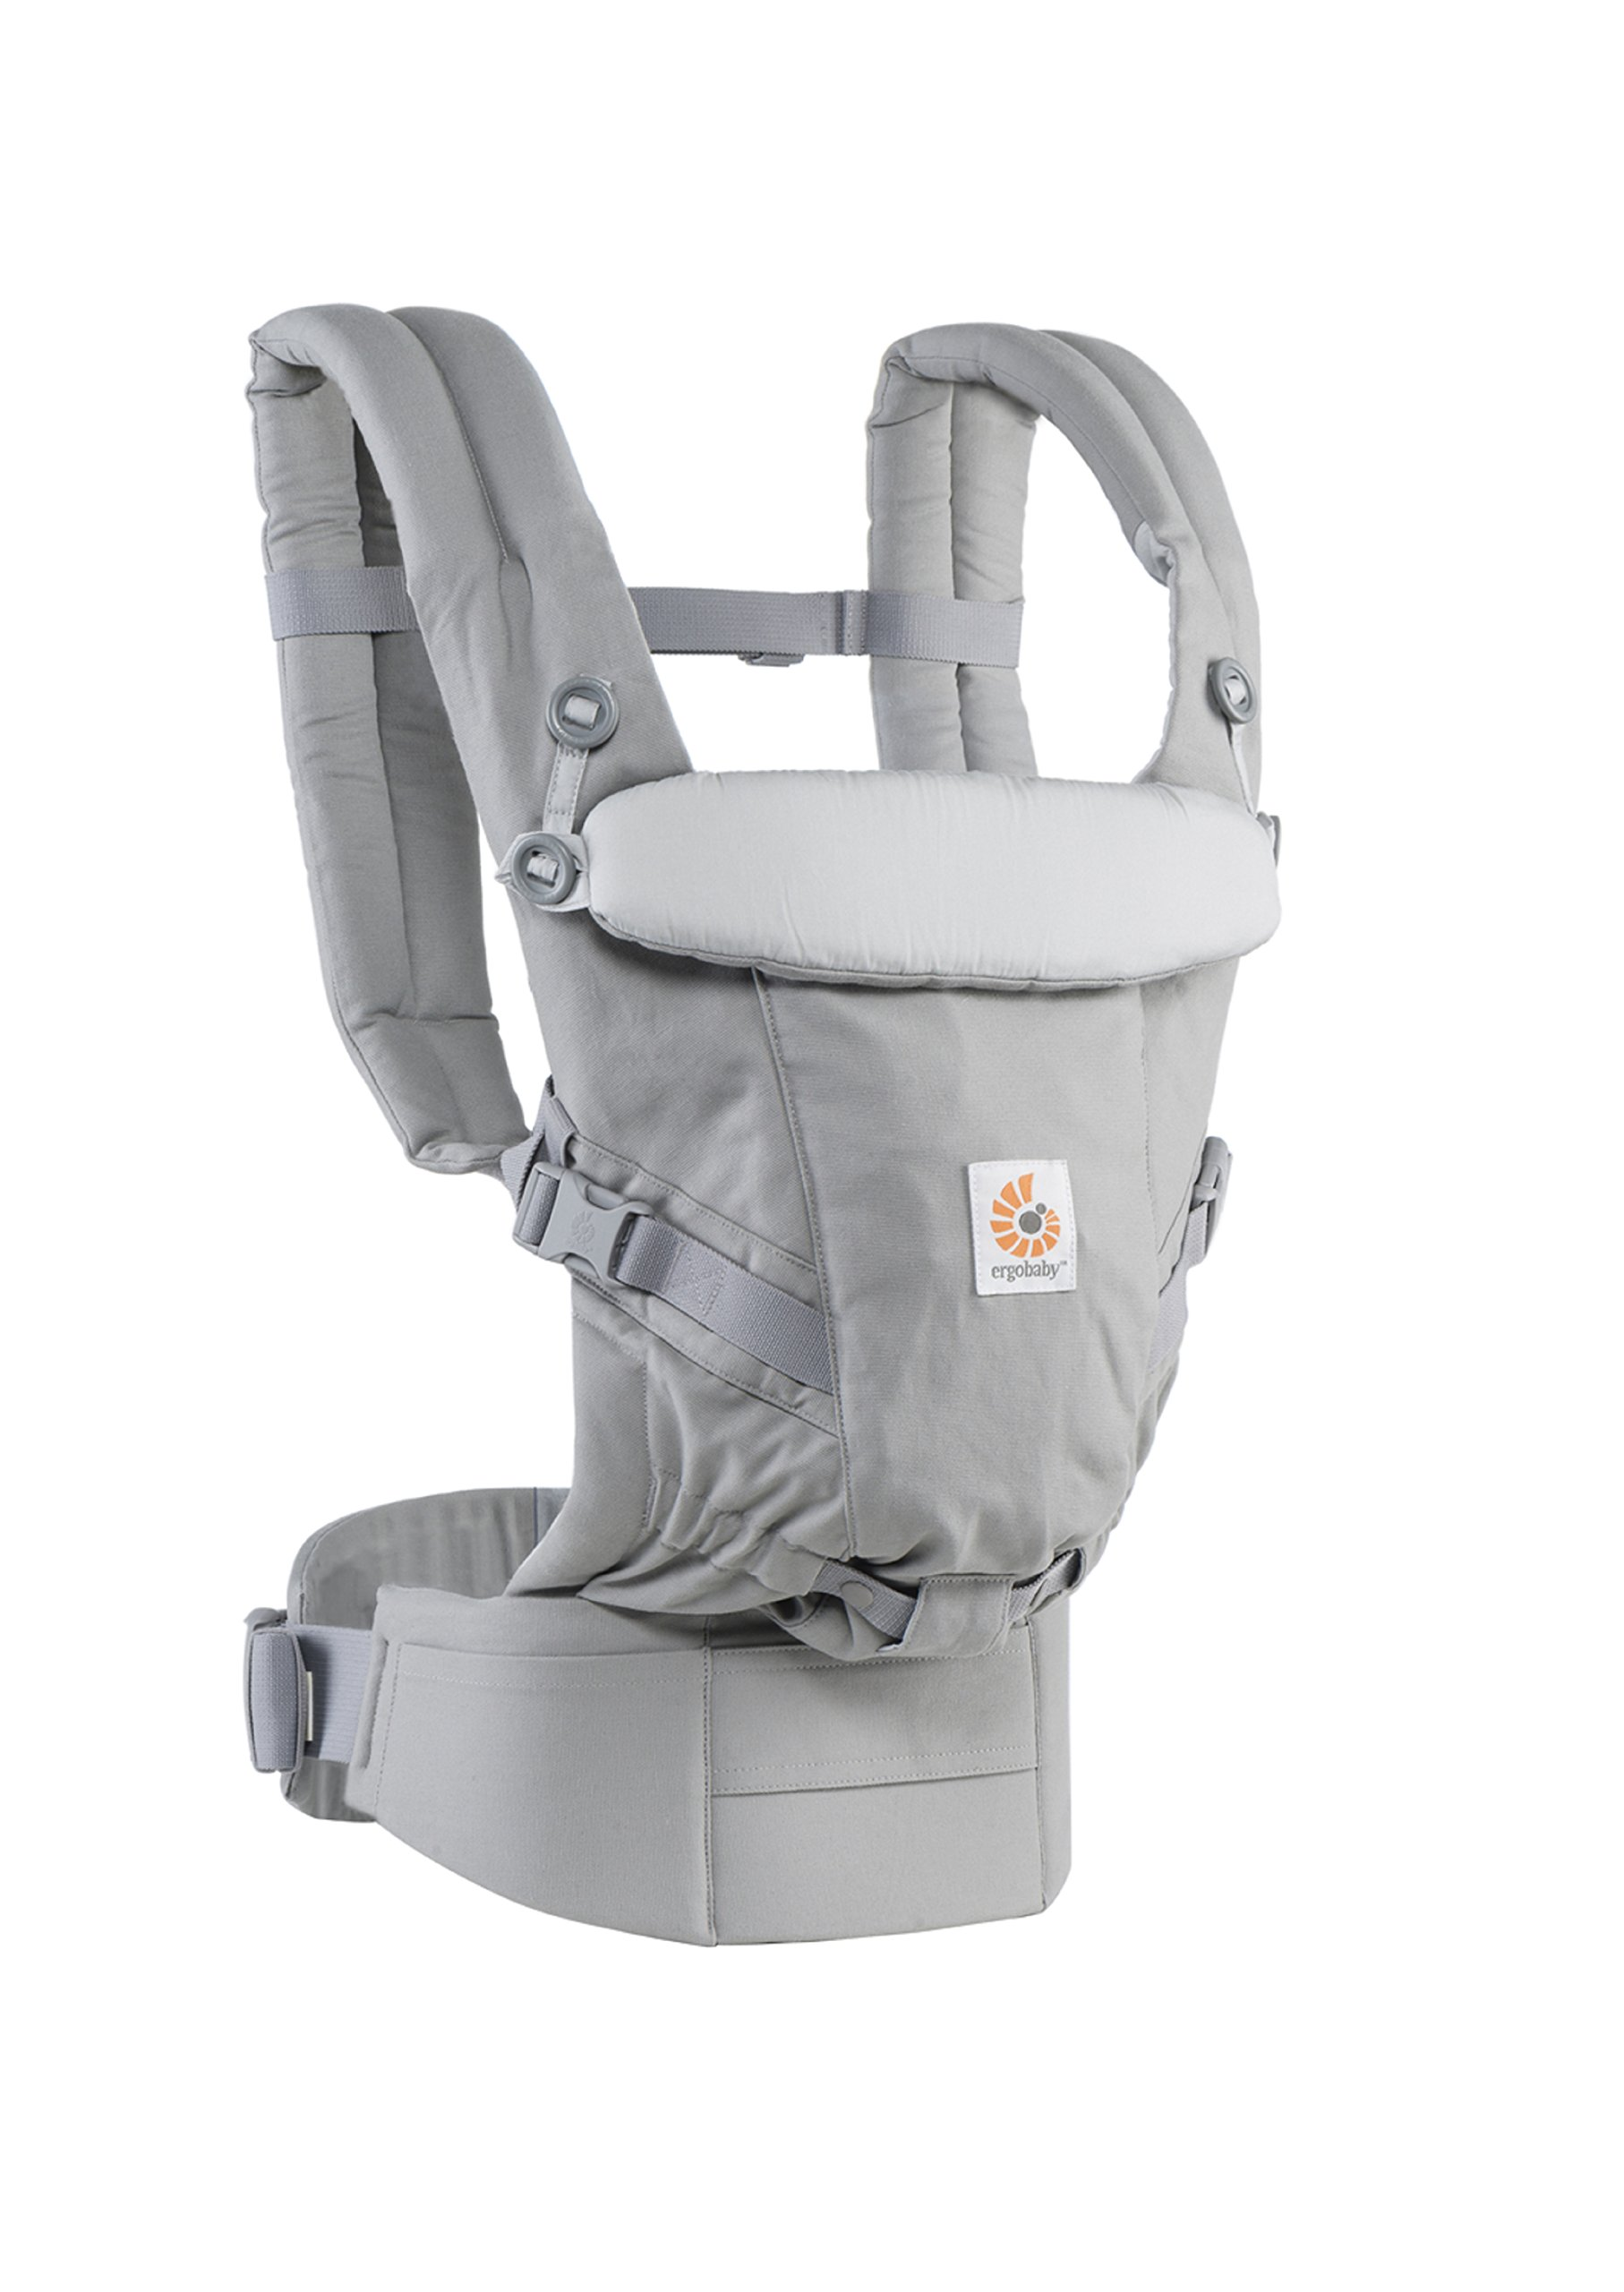 ErgoBaby Adapt Baby Carrier Grey Ergobaby Adapt to Every Baby Easy. Adjustable. Newborn to toddler. 2